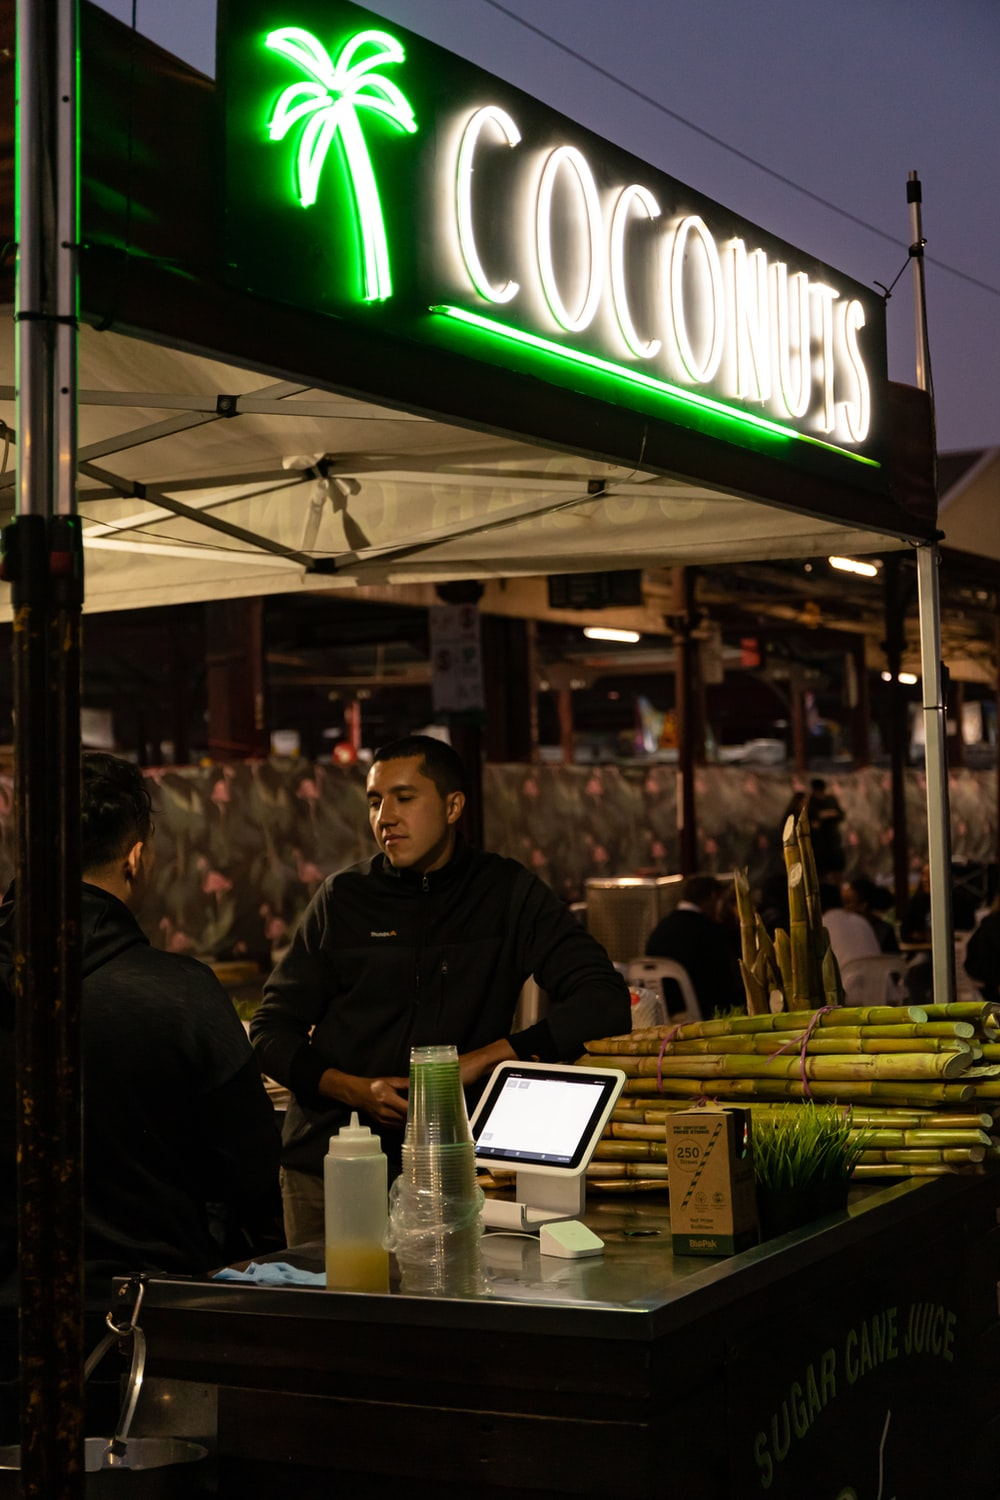 man in black jacket standing in front of food stall